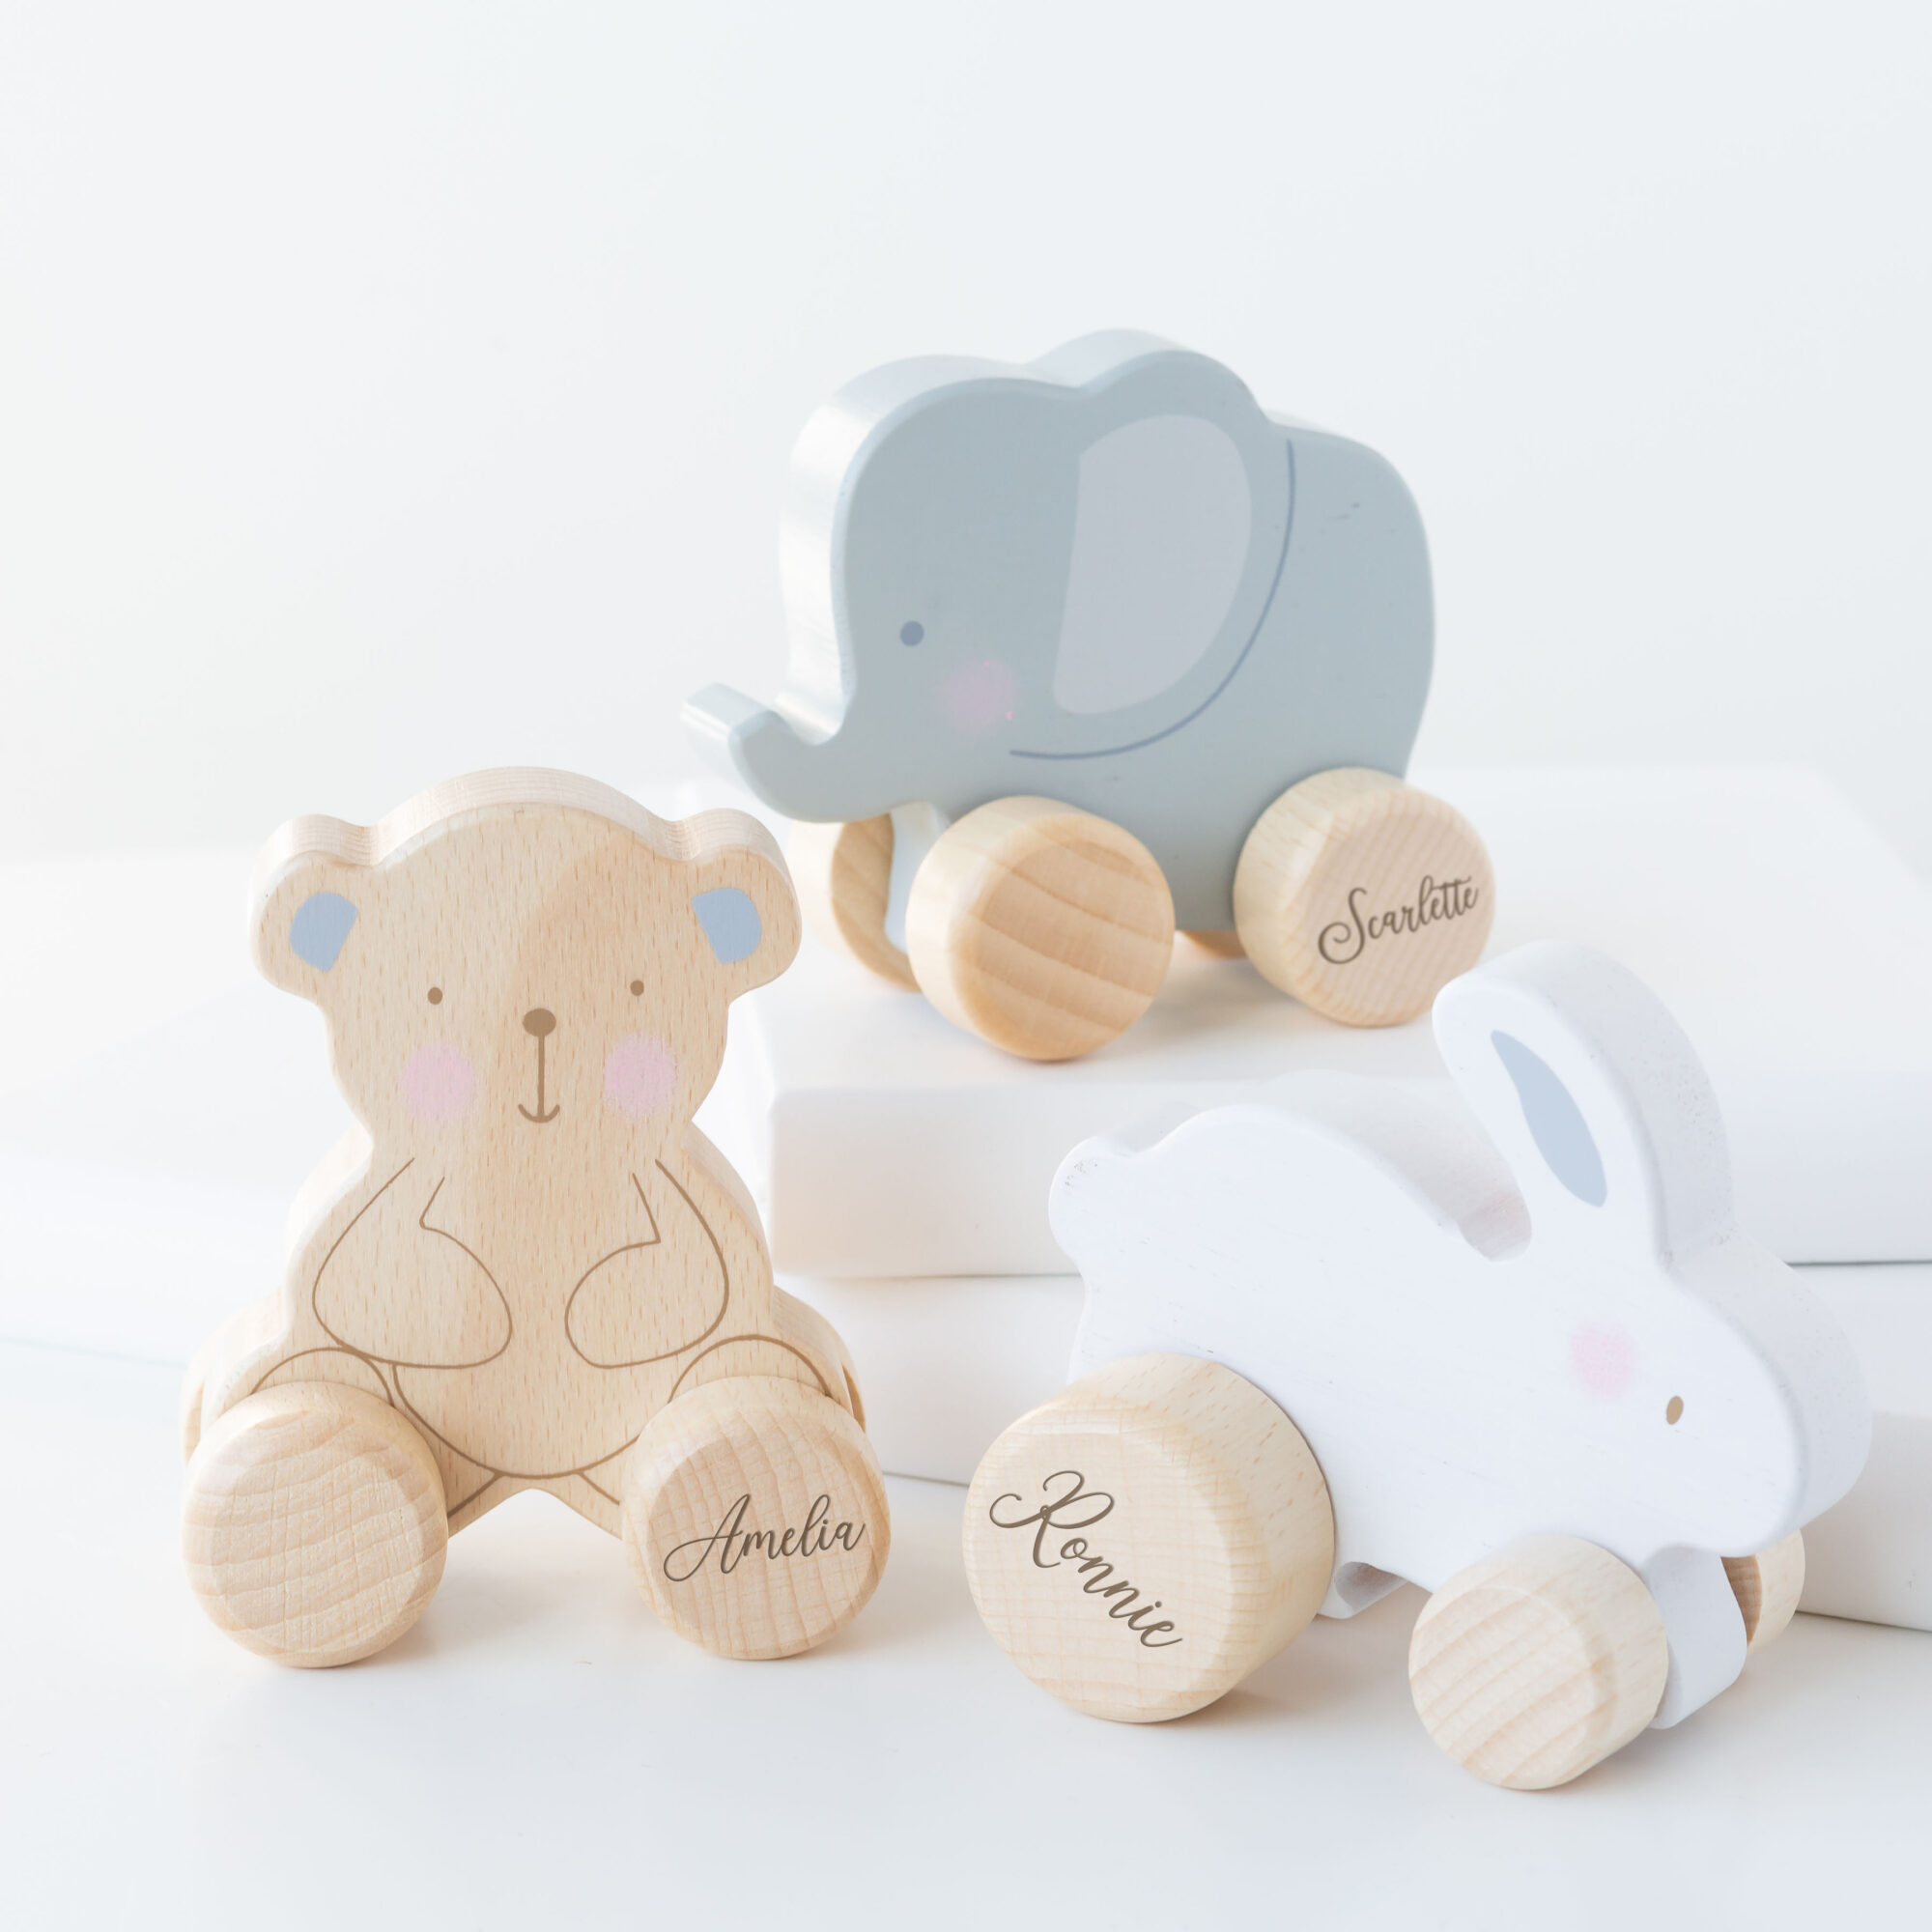 Personalised Wooden Elephant, Teddy or Bunny Push Toy